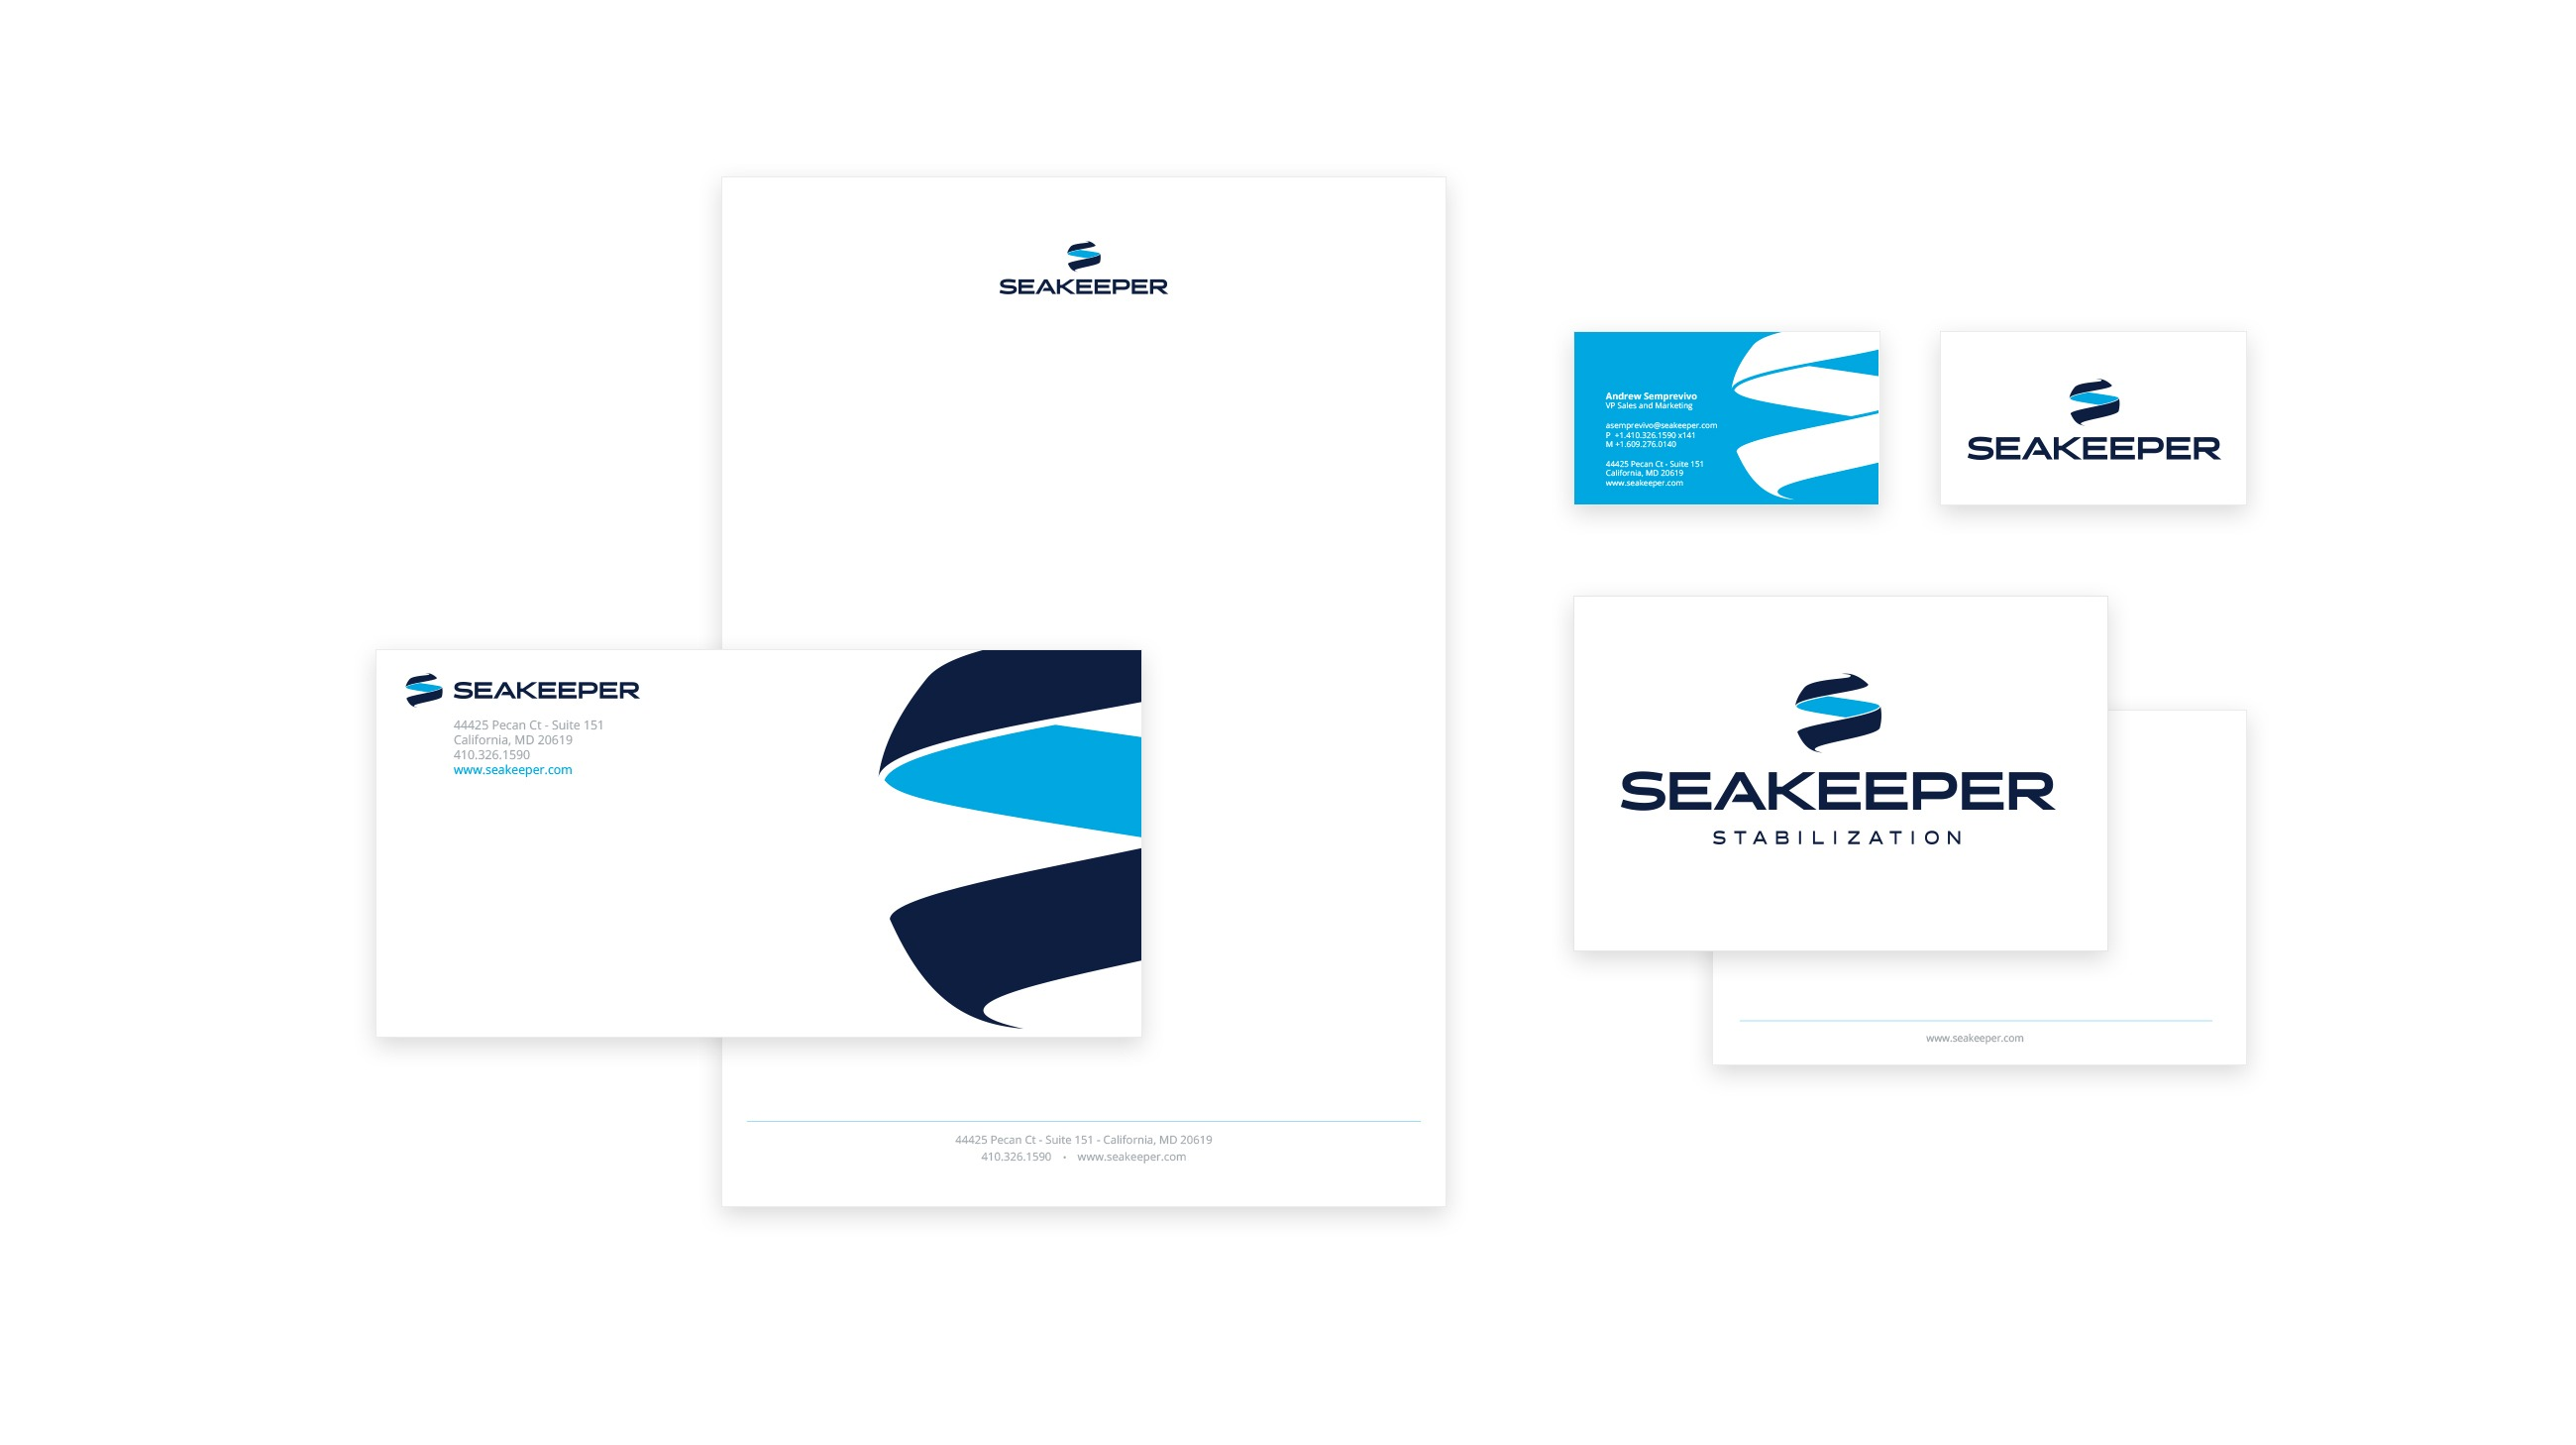 Seakeeper Stationary